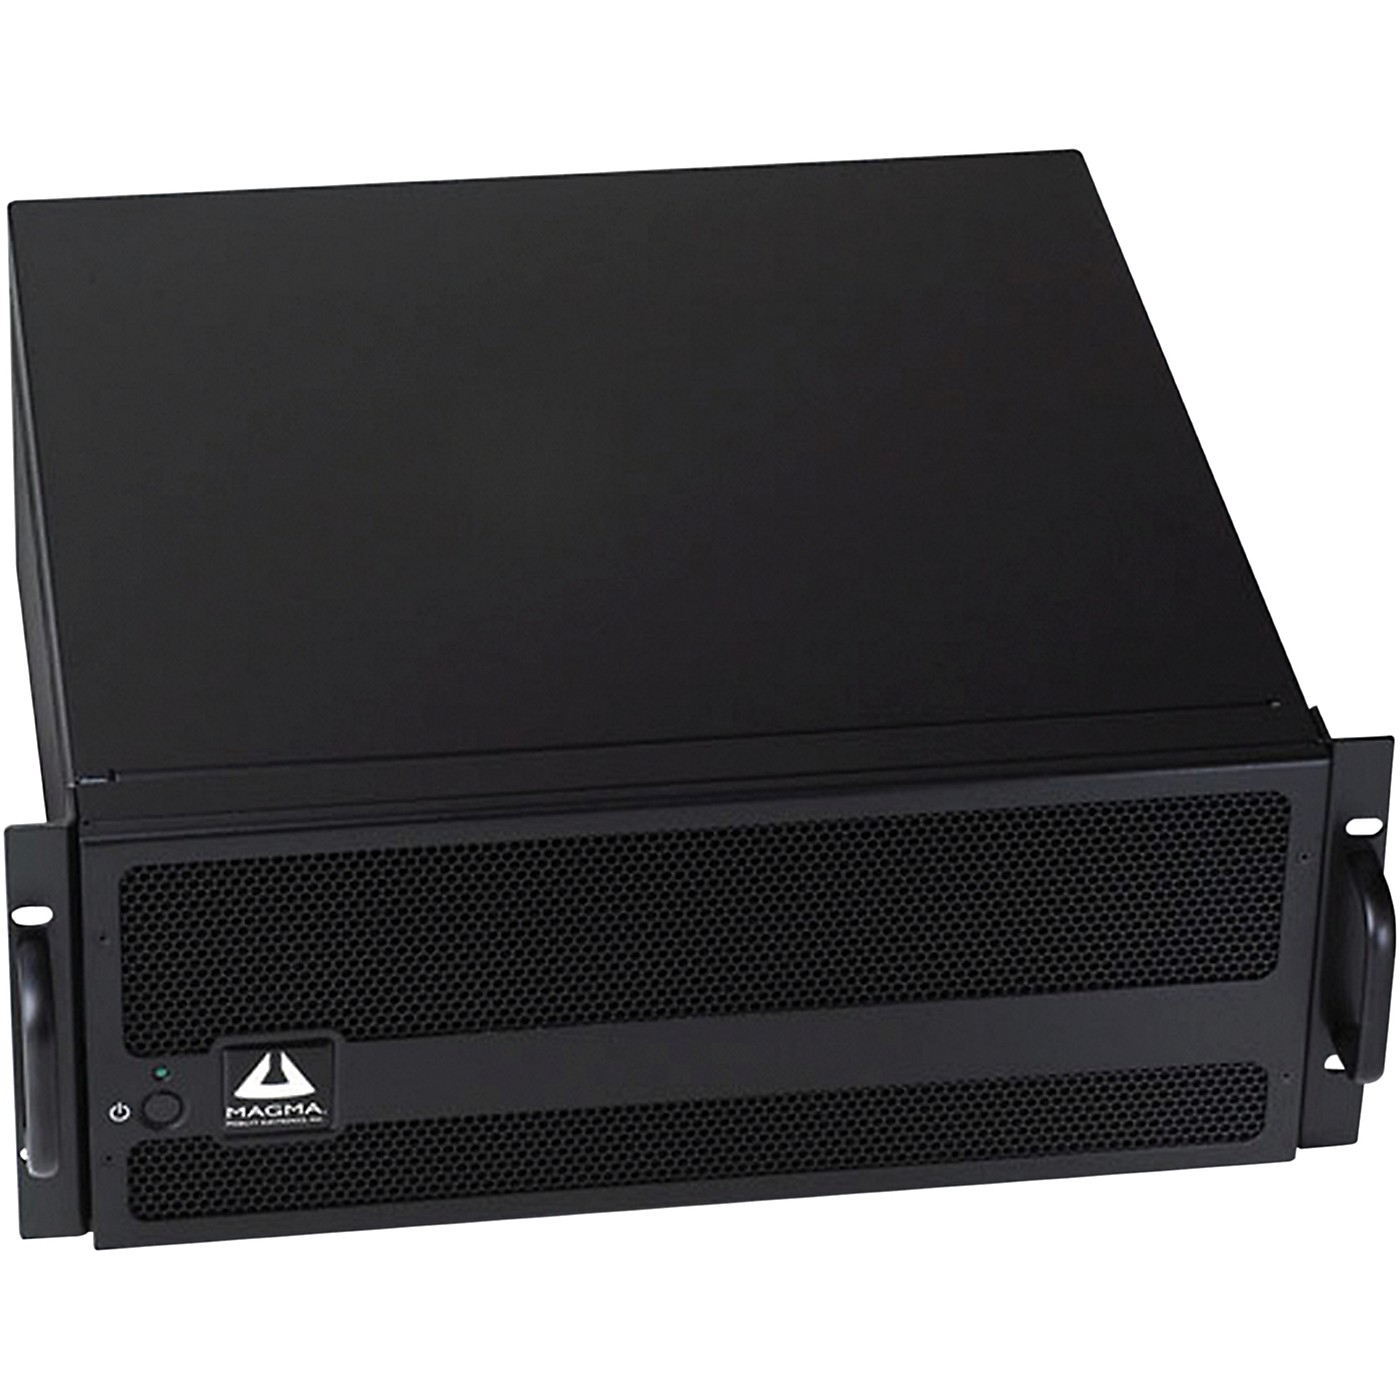 MAGMA ExpressBox 7 PCIE Expansion Chassis thumbnail